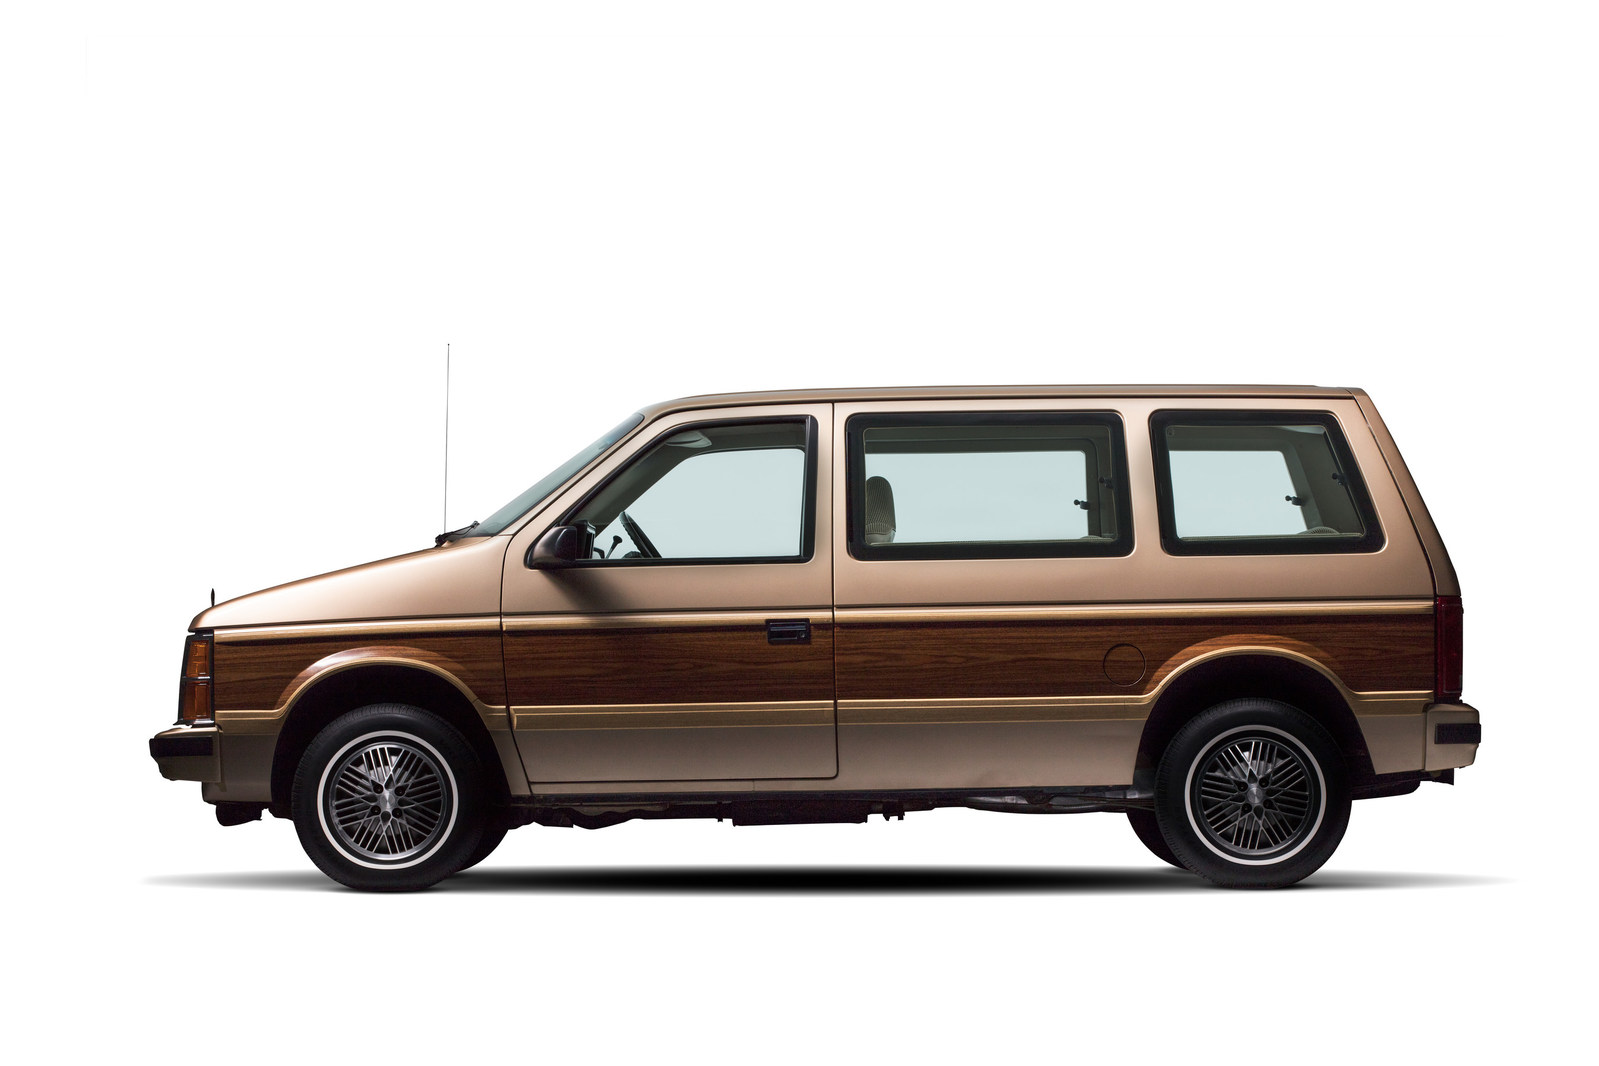 1984 Plymouth Voyager - Historic Vehicle Association